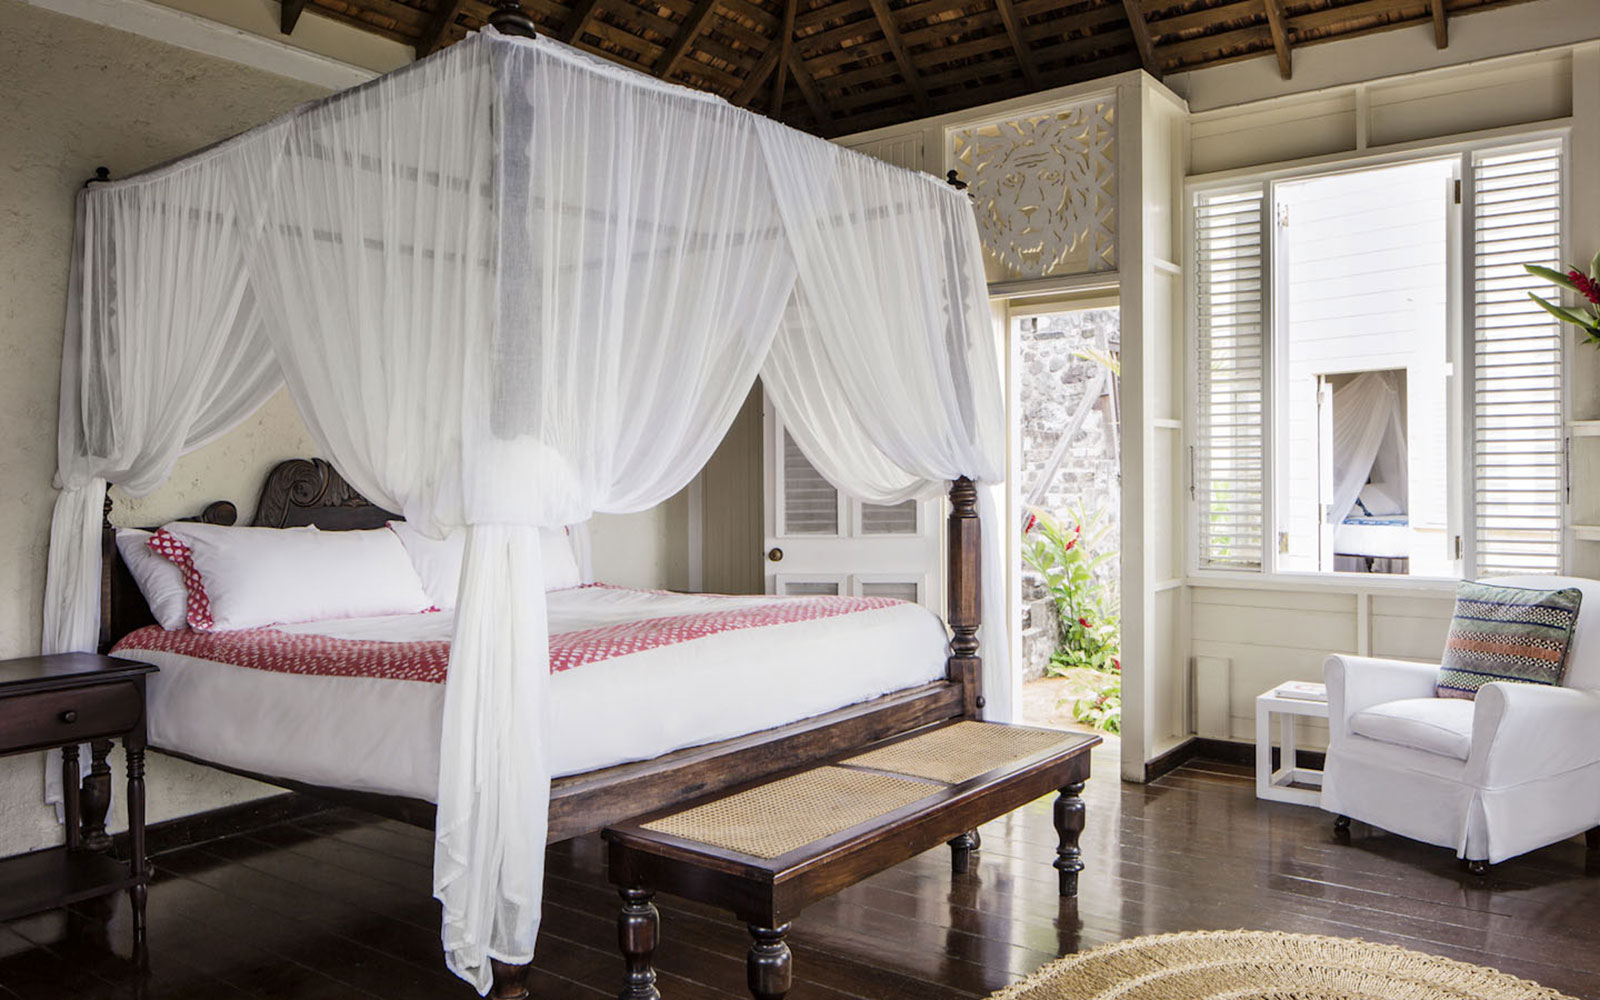 The 13 Sexiest Hotel Rooms in the World